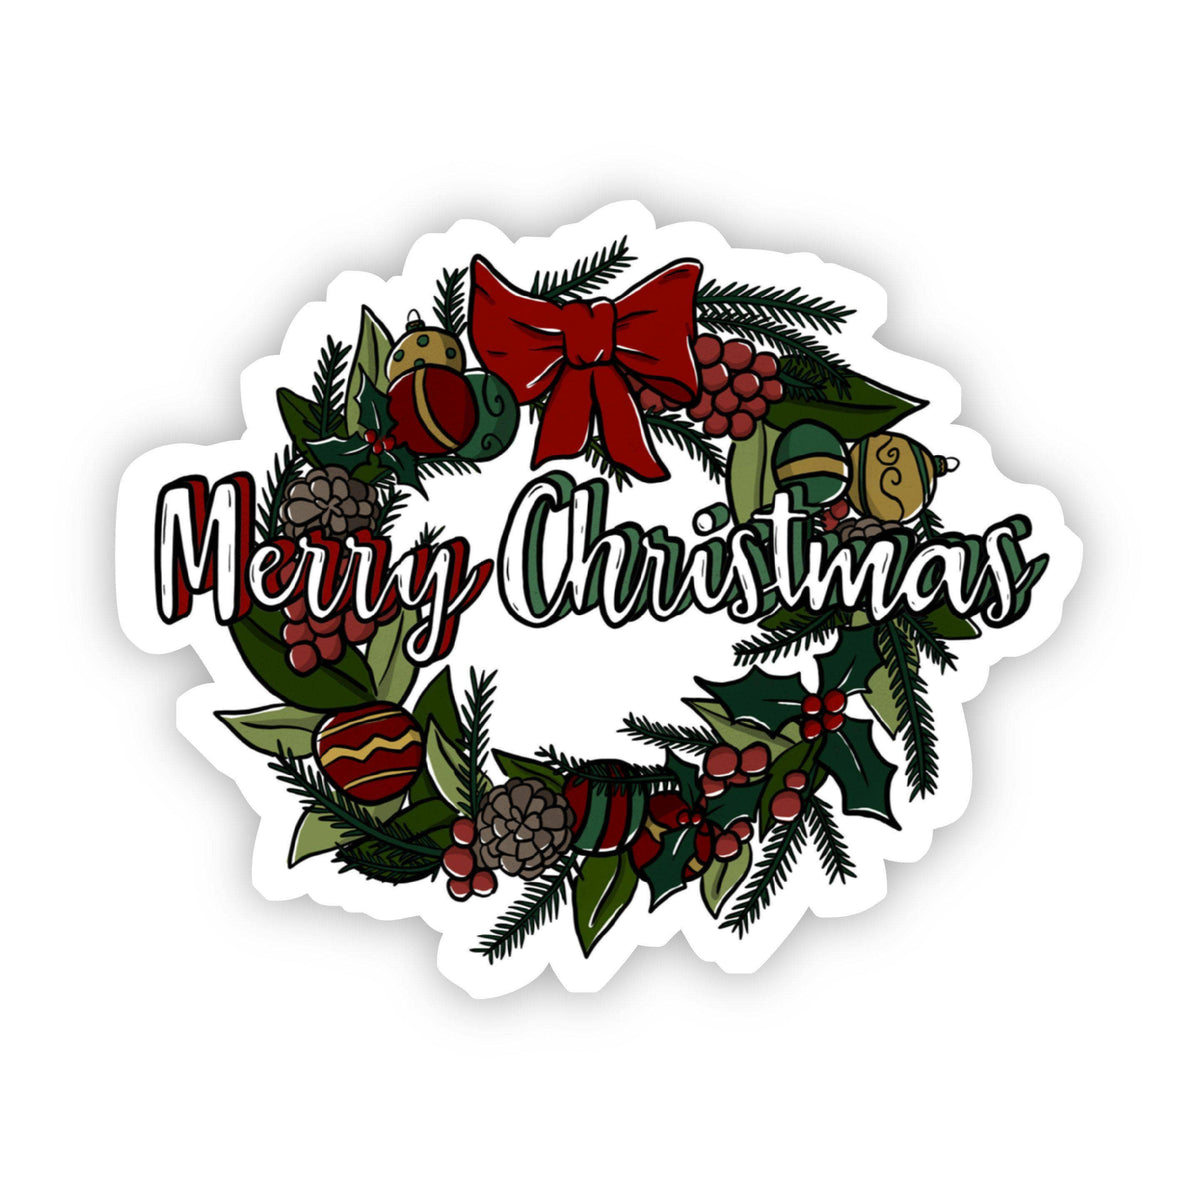 Merry Christmas Wreath Sticker